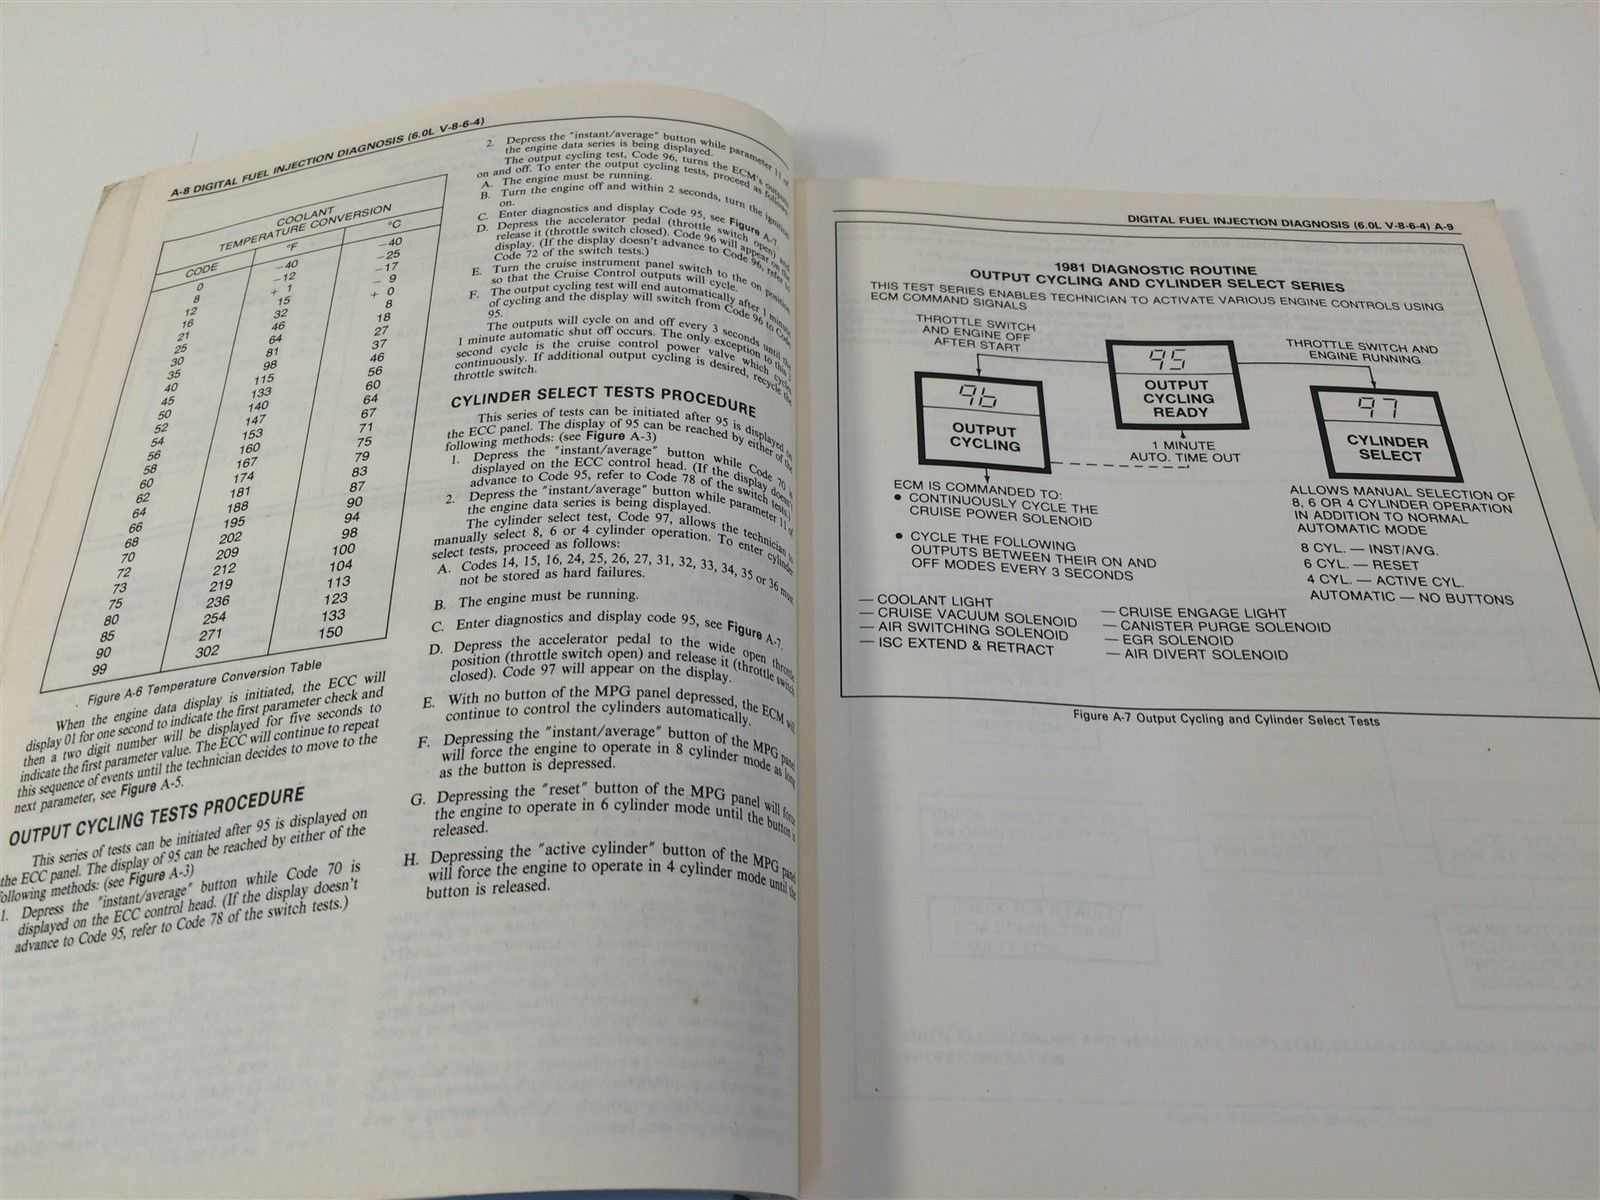 1981 Cadillac Digital Fuel Injection And Computer Command Control Manual Supplem